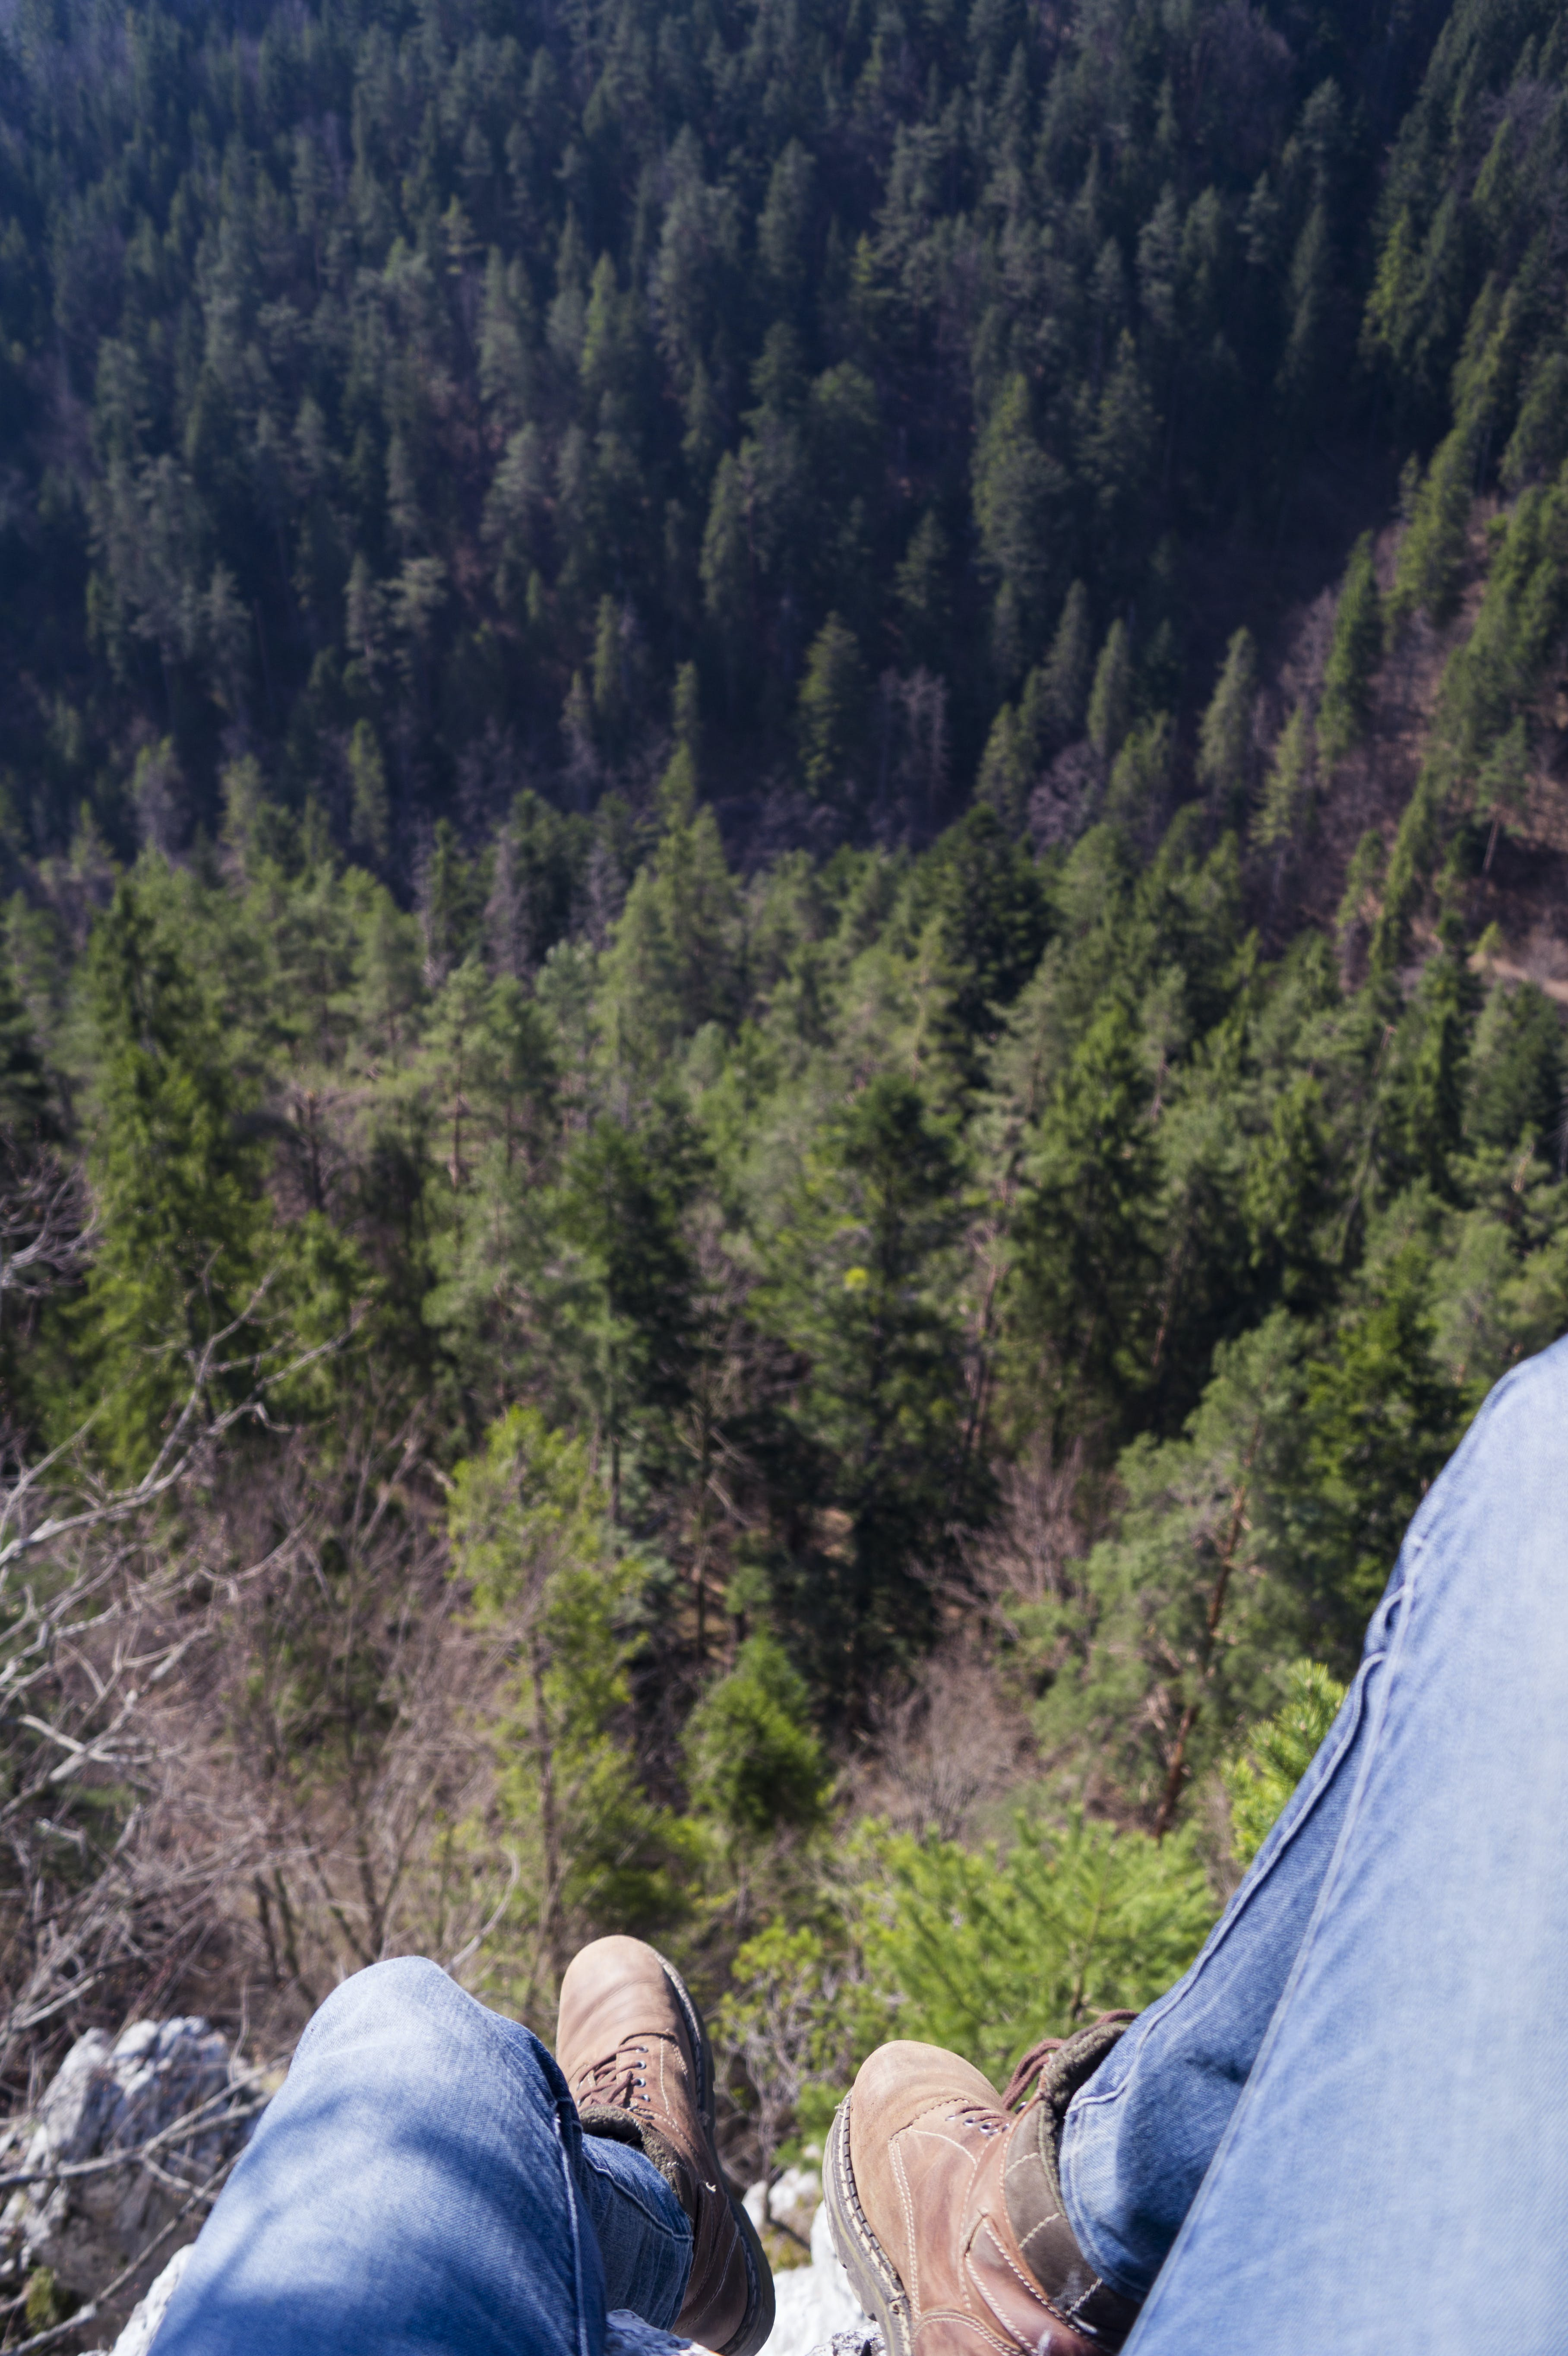 Person on High Ground With Tall Trees Below